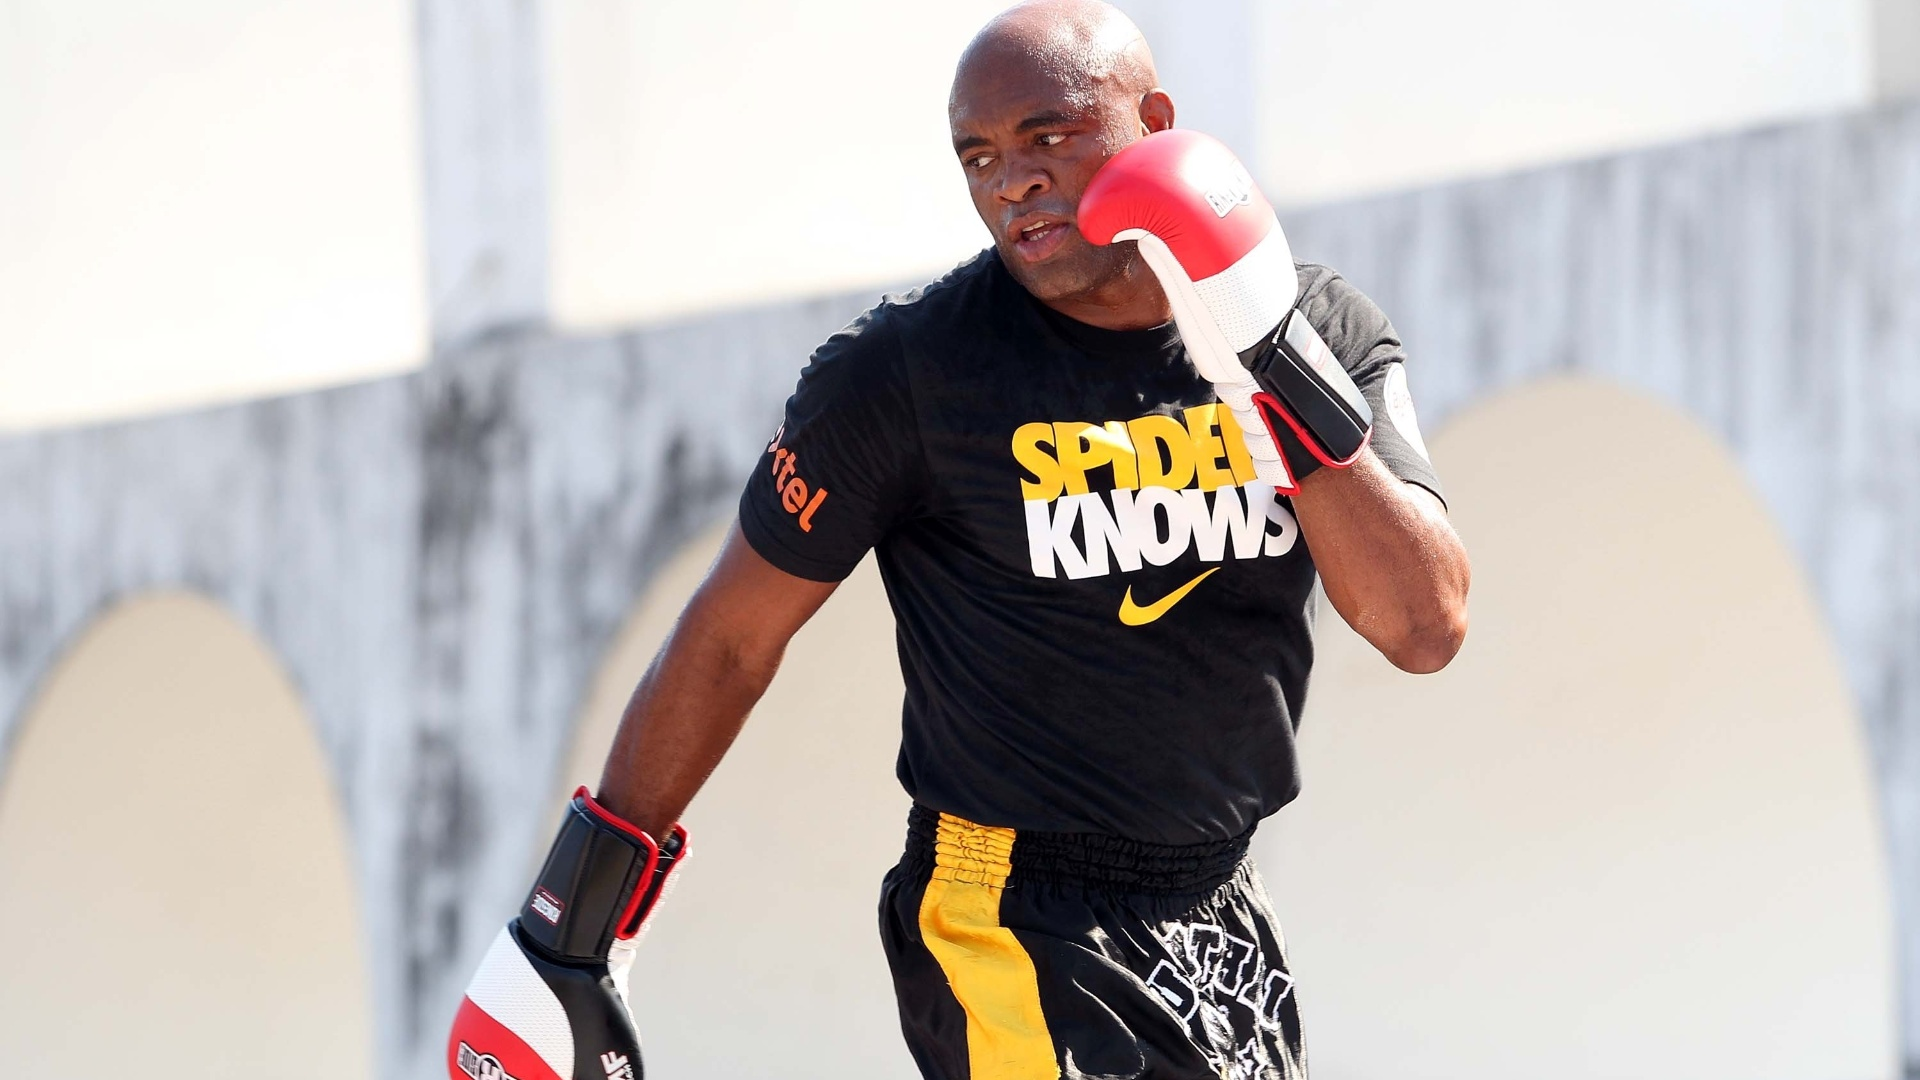 Anderson Silva faz treino aberto nos Arcos da Lapa antes de enfrentar Stephan Bonnar no UFC Rio 3 (10/10/2012)